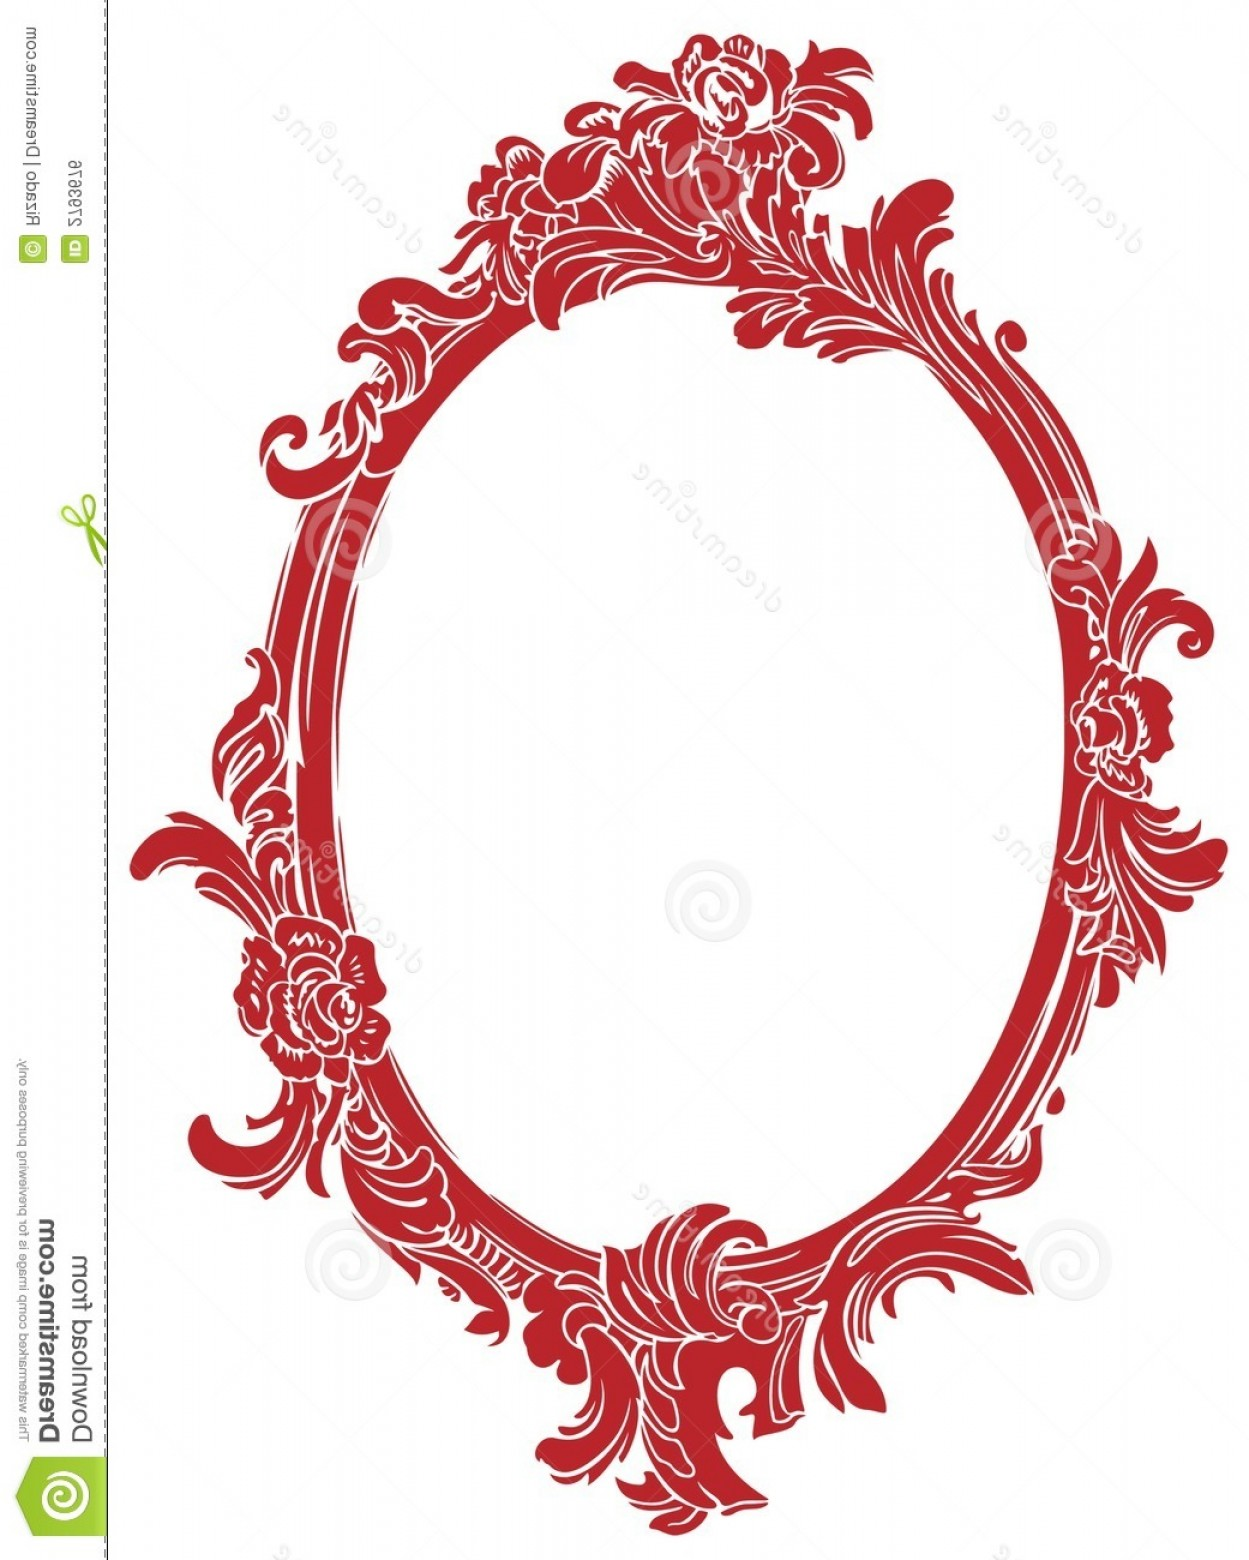 Filigree Oval Frame Vector: Royalty Free Stock Image Red Decor Frame Image